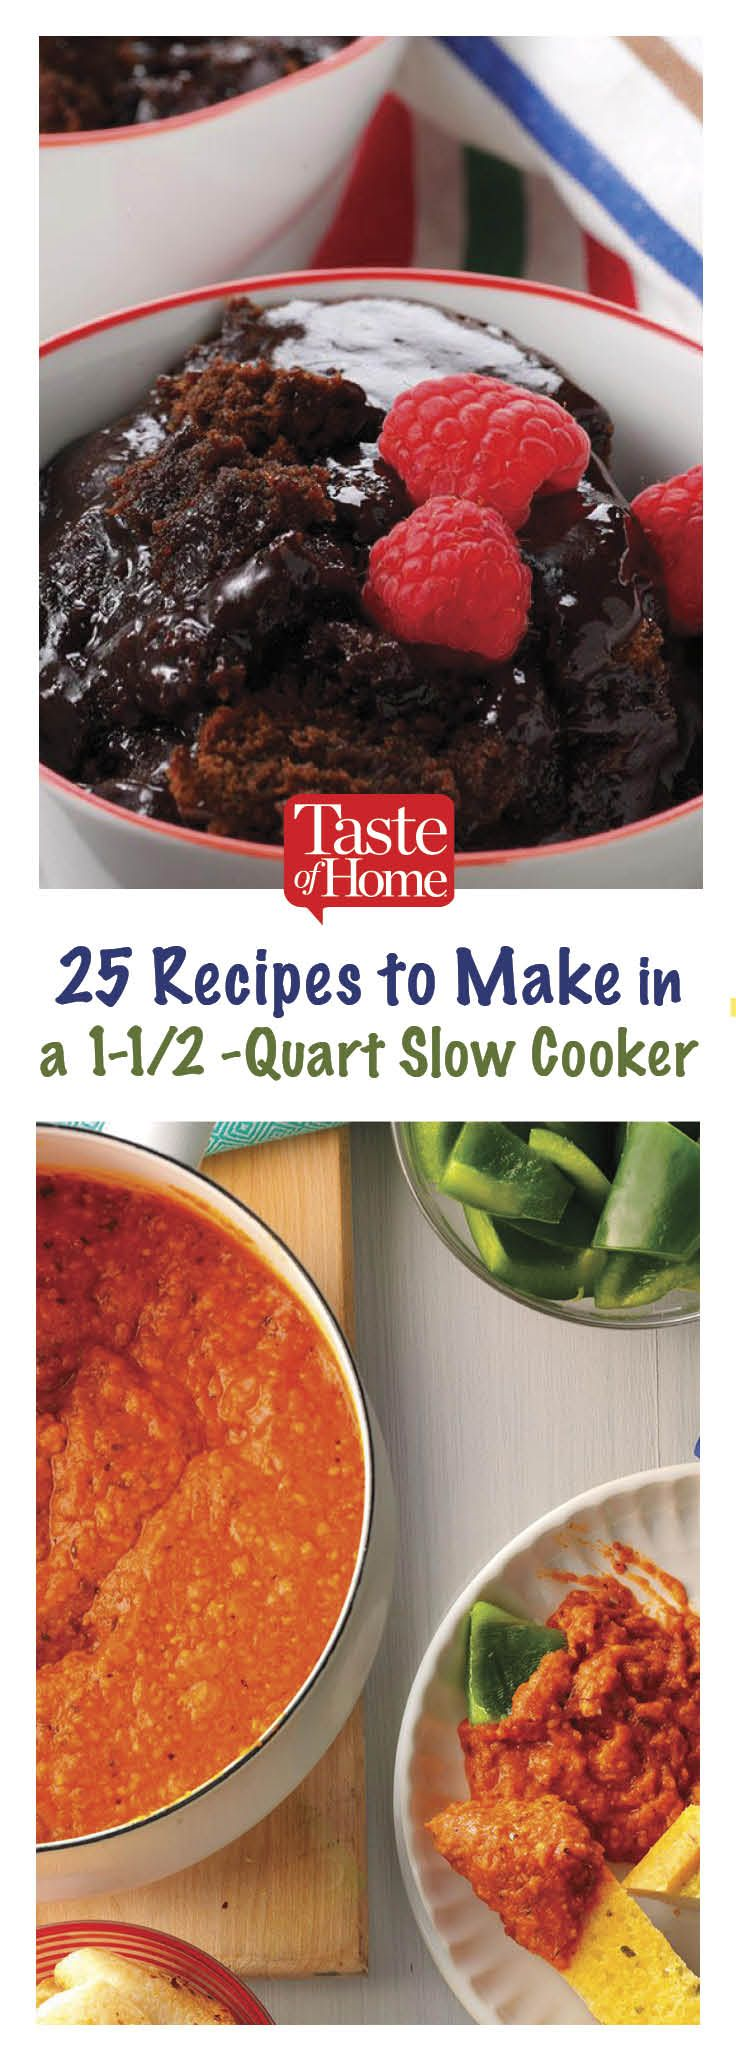 Photo of 25 Recipes to Make in a 1-1/2-Quart Slow Cooker